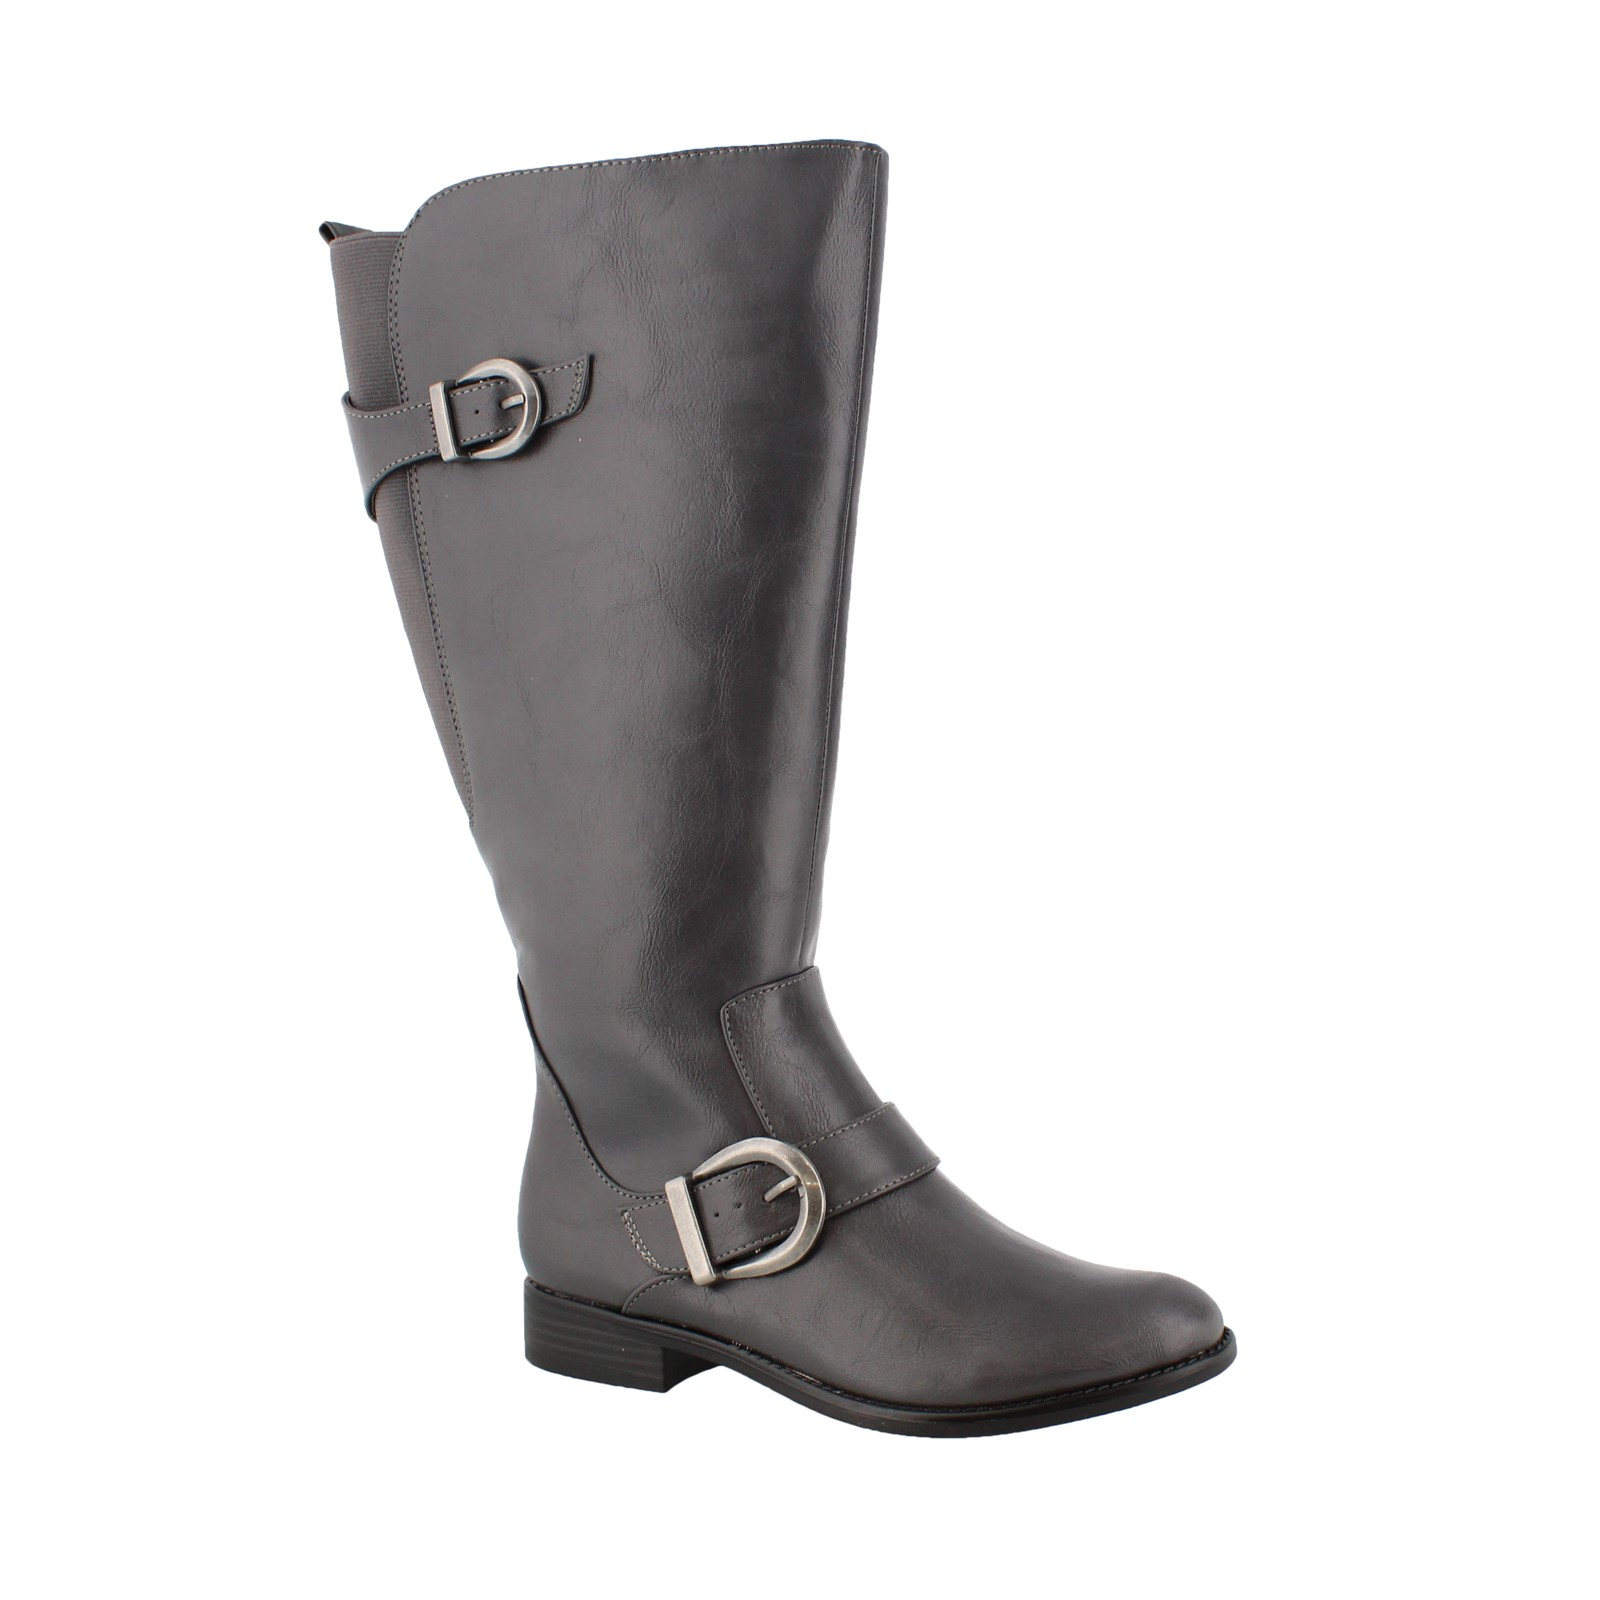 delicate colors save up to 80% on feet images of Women's Lifestride, Rosaria Tall Wide Shaft Riding Boots | Peltz Shoes